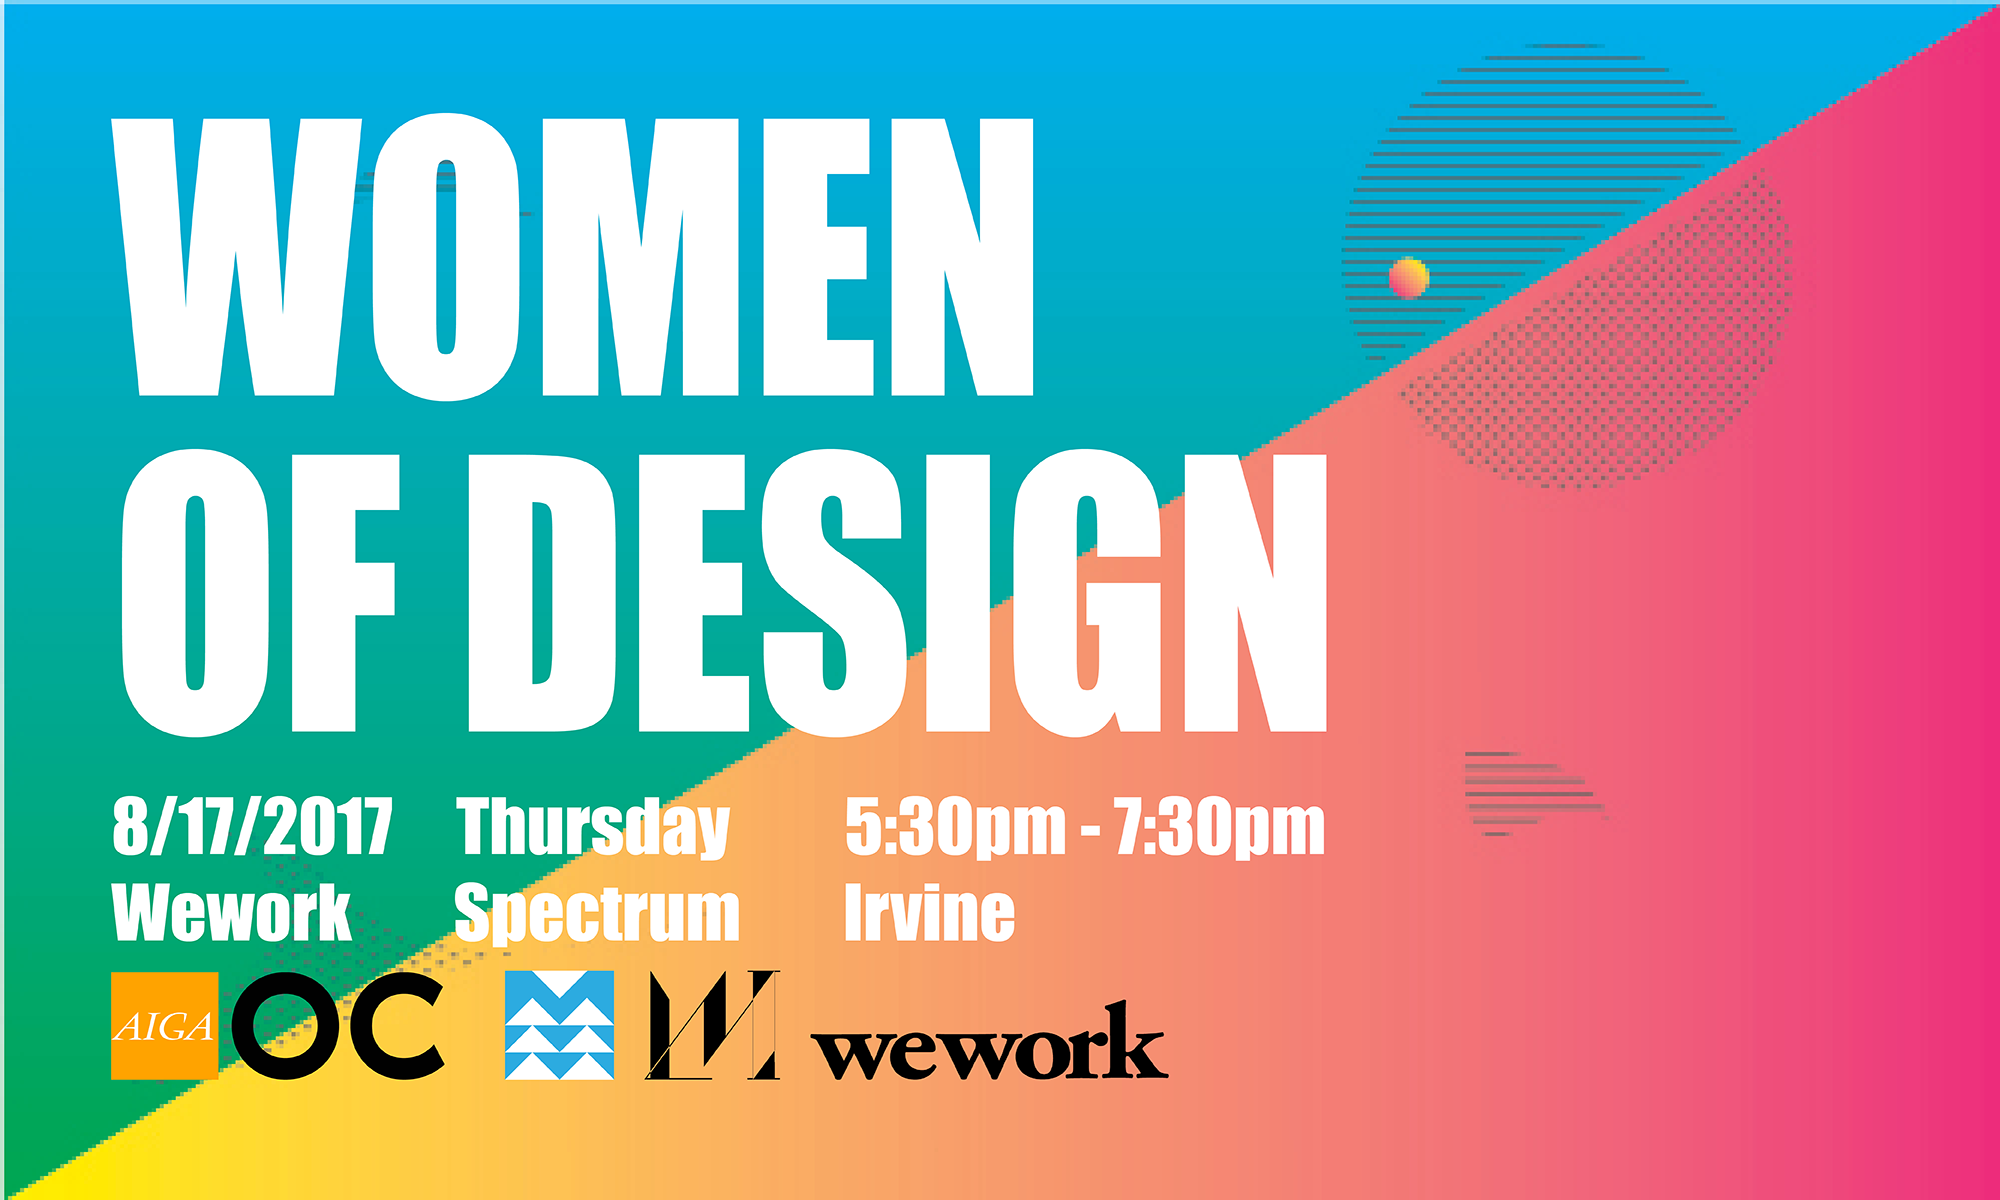 MEETUP: Women of Design